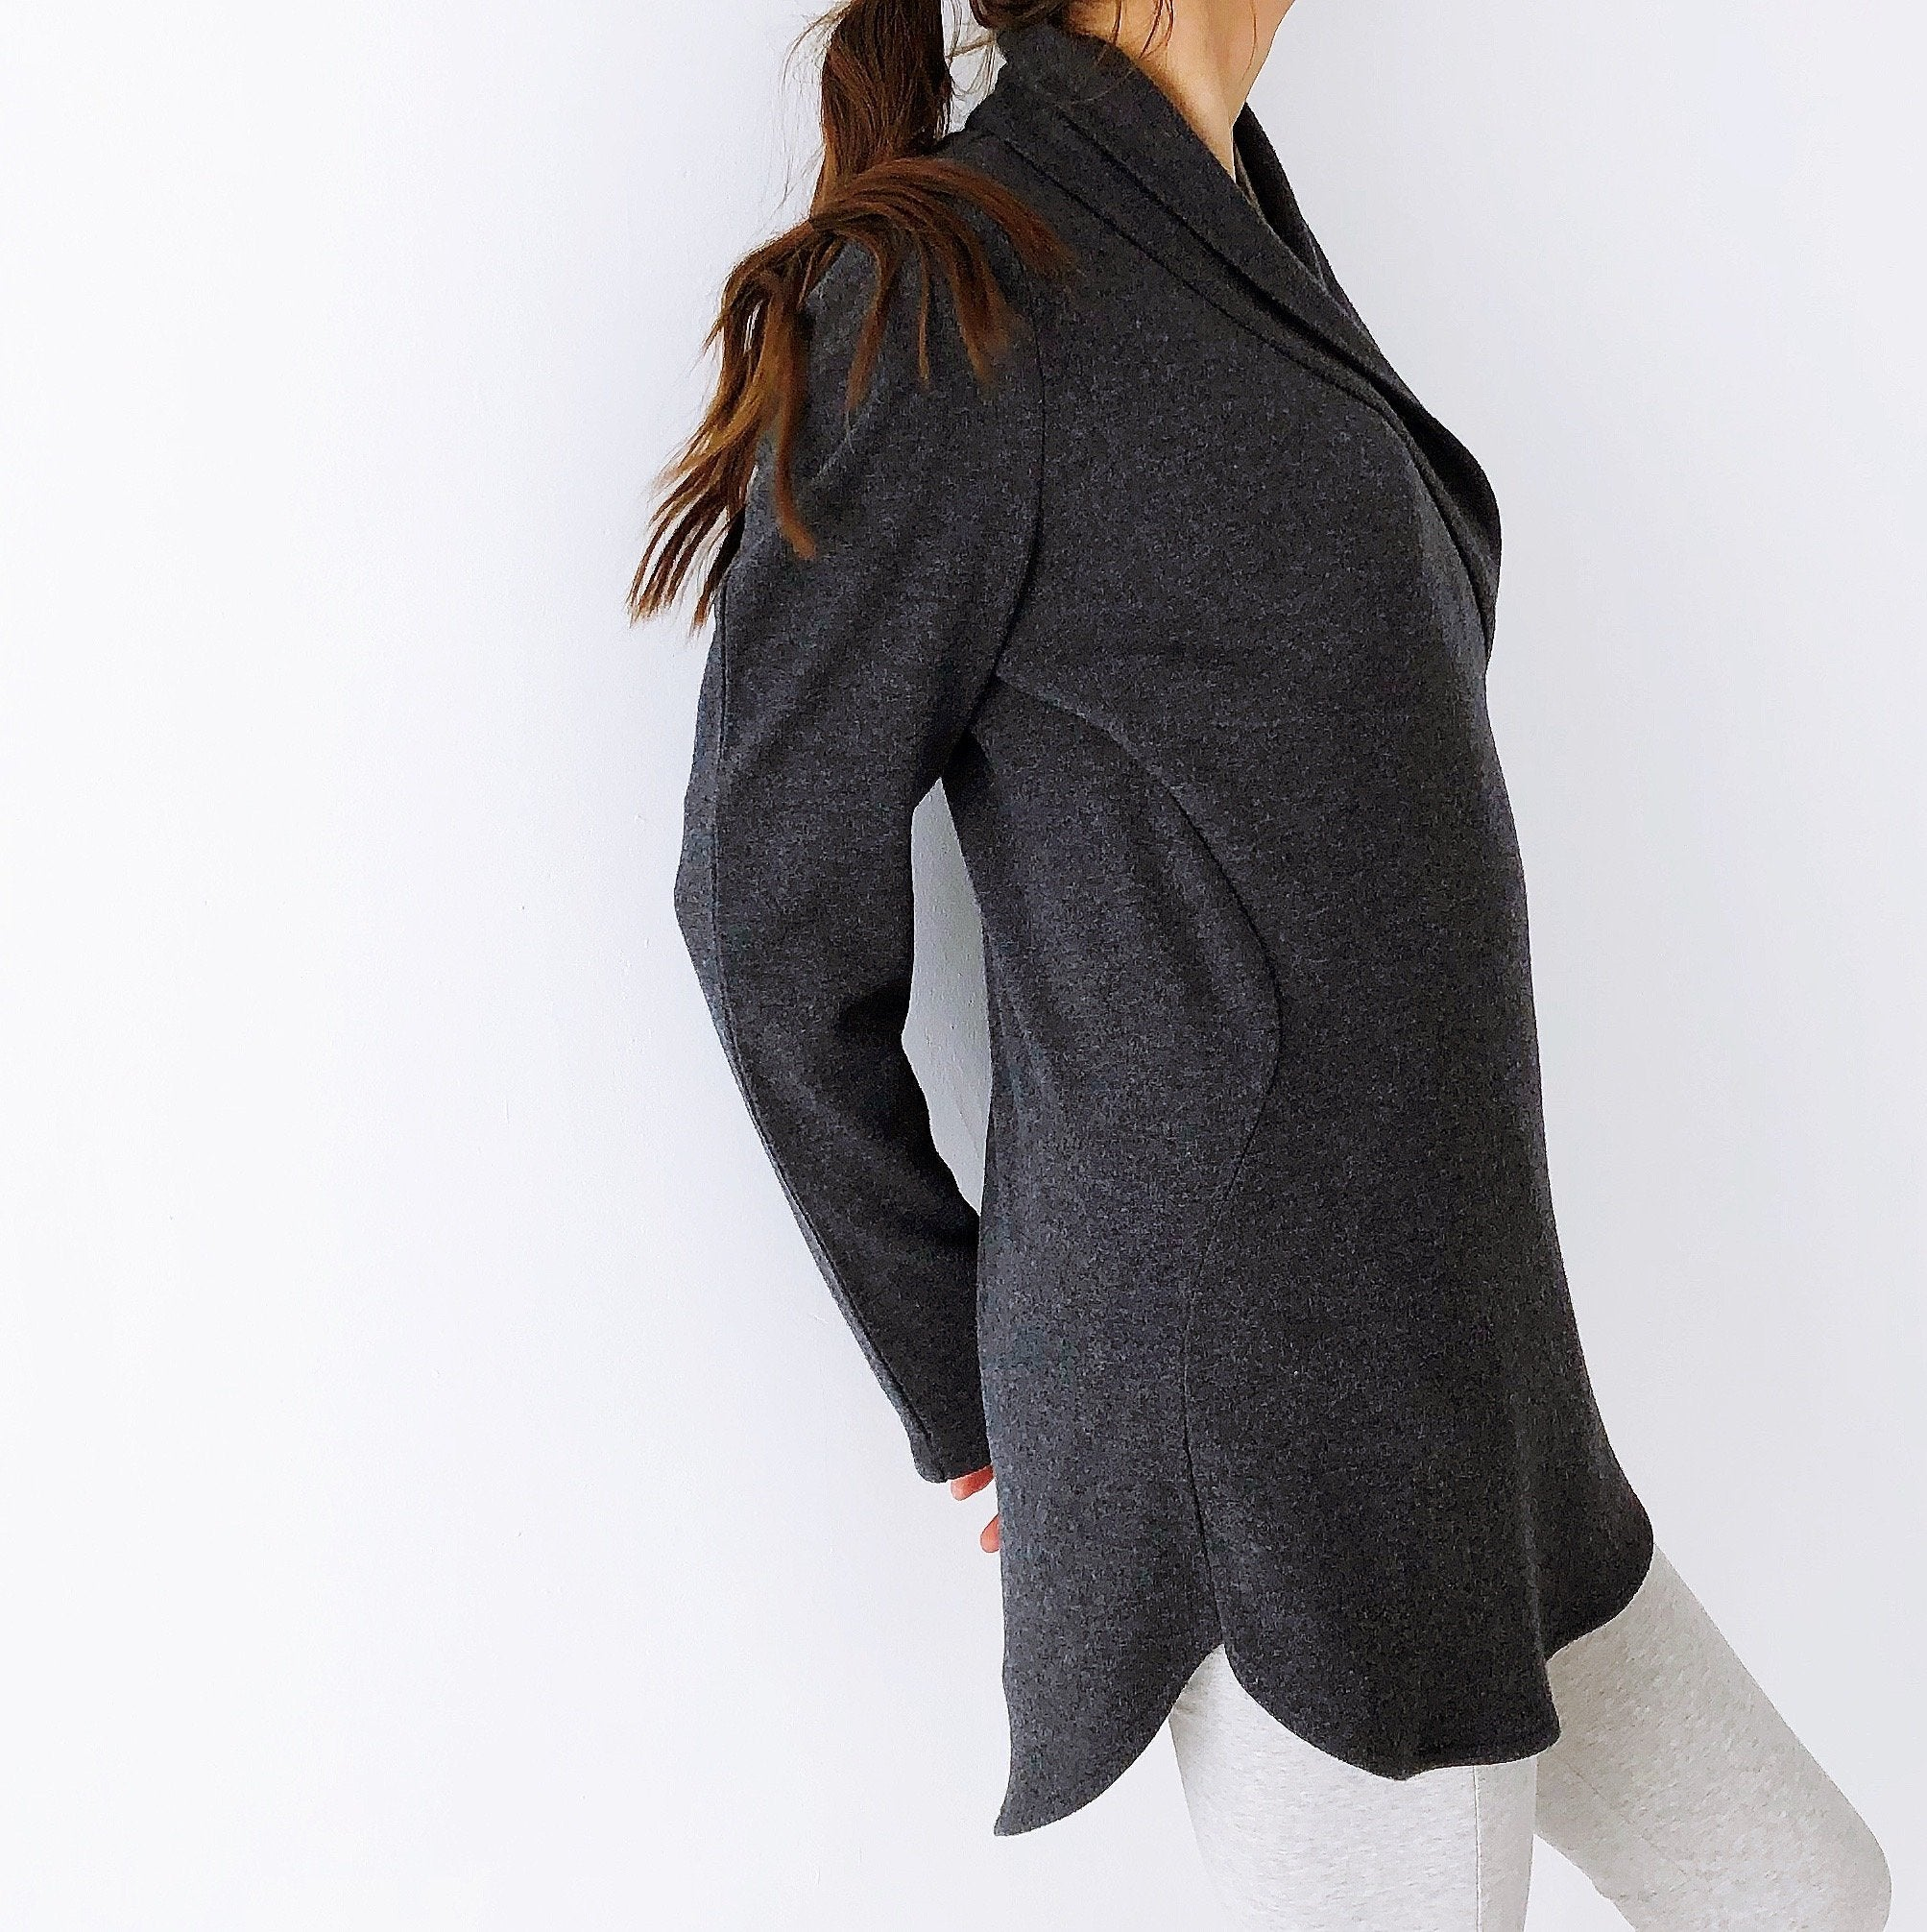 The Lotus Cardigan - Italian Lambswool